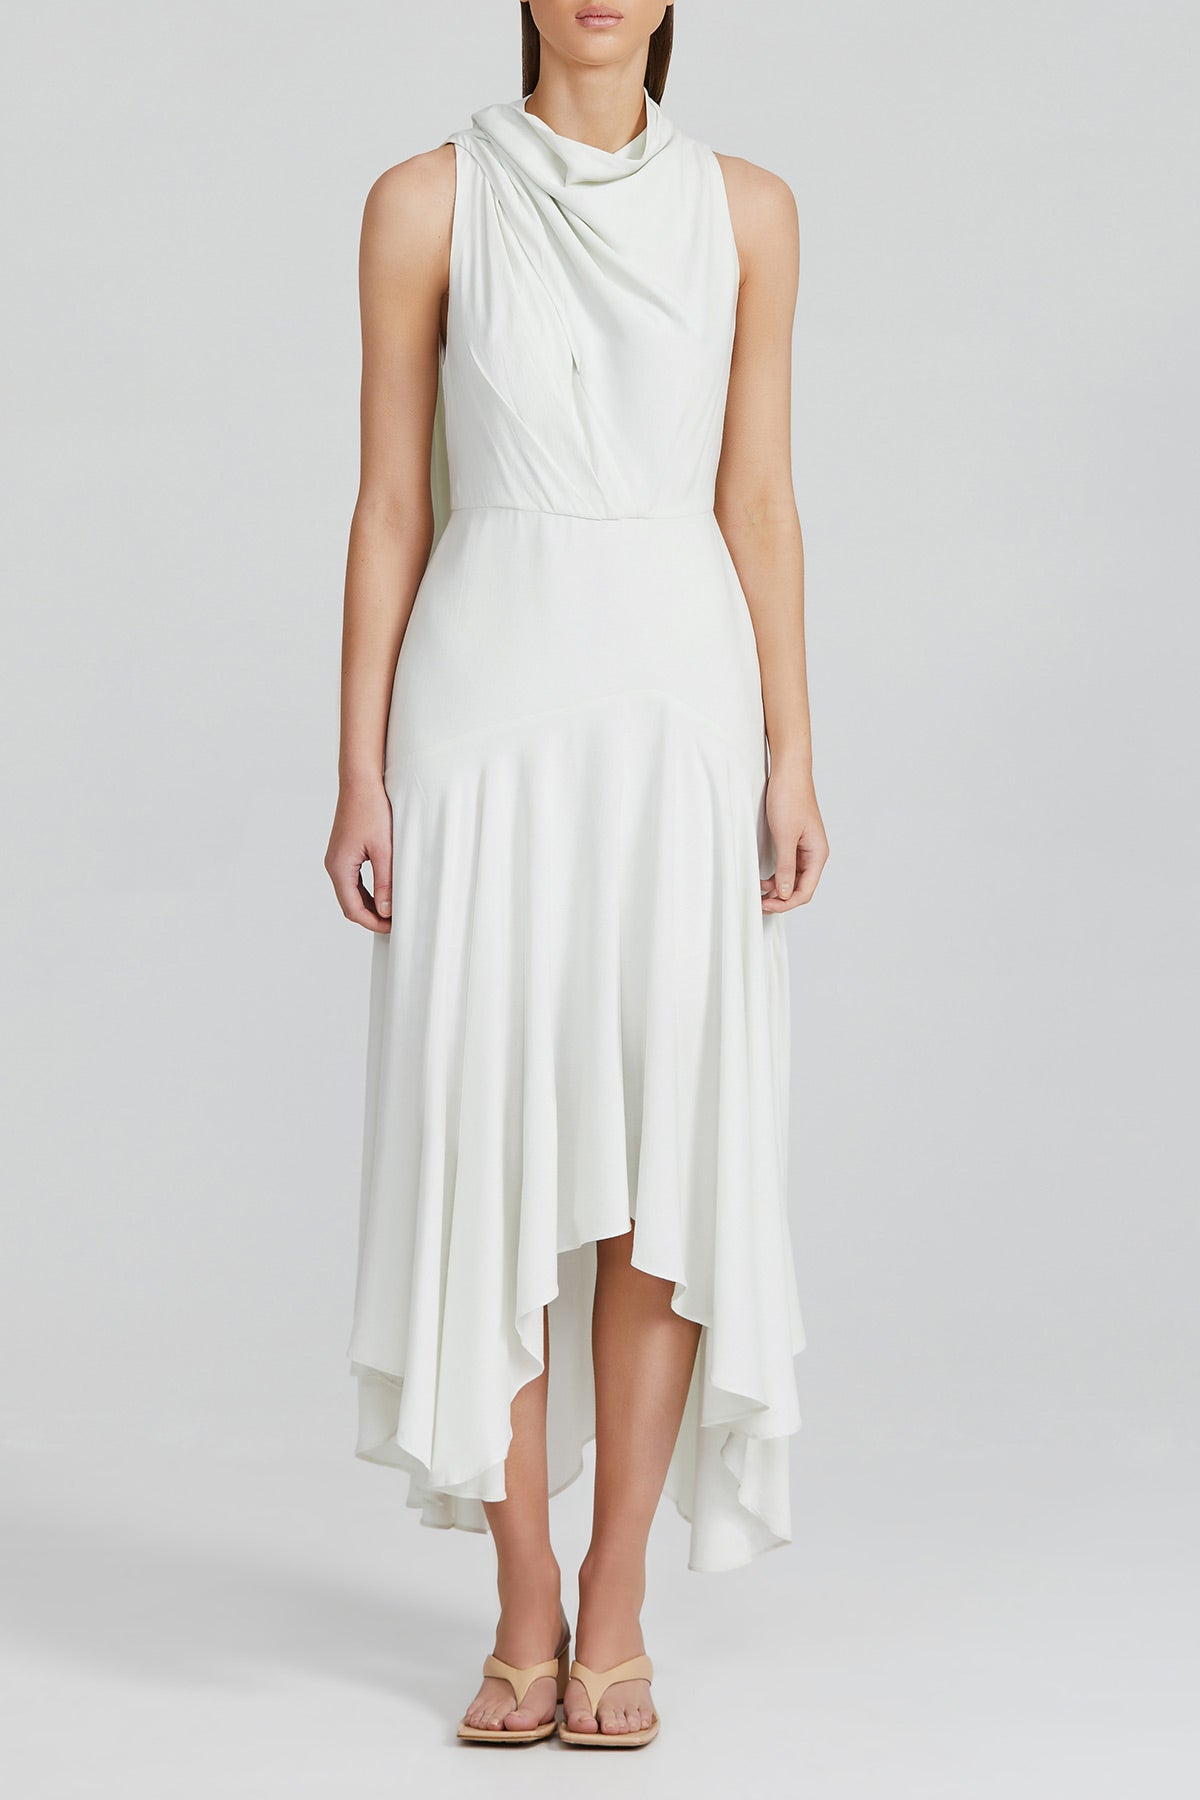 Acler Misty White Midi Length Dress with High Cowl Neck, Gathered Asymmetric Hemline and Neck Tie